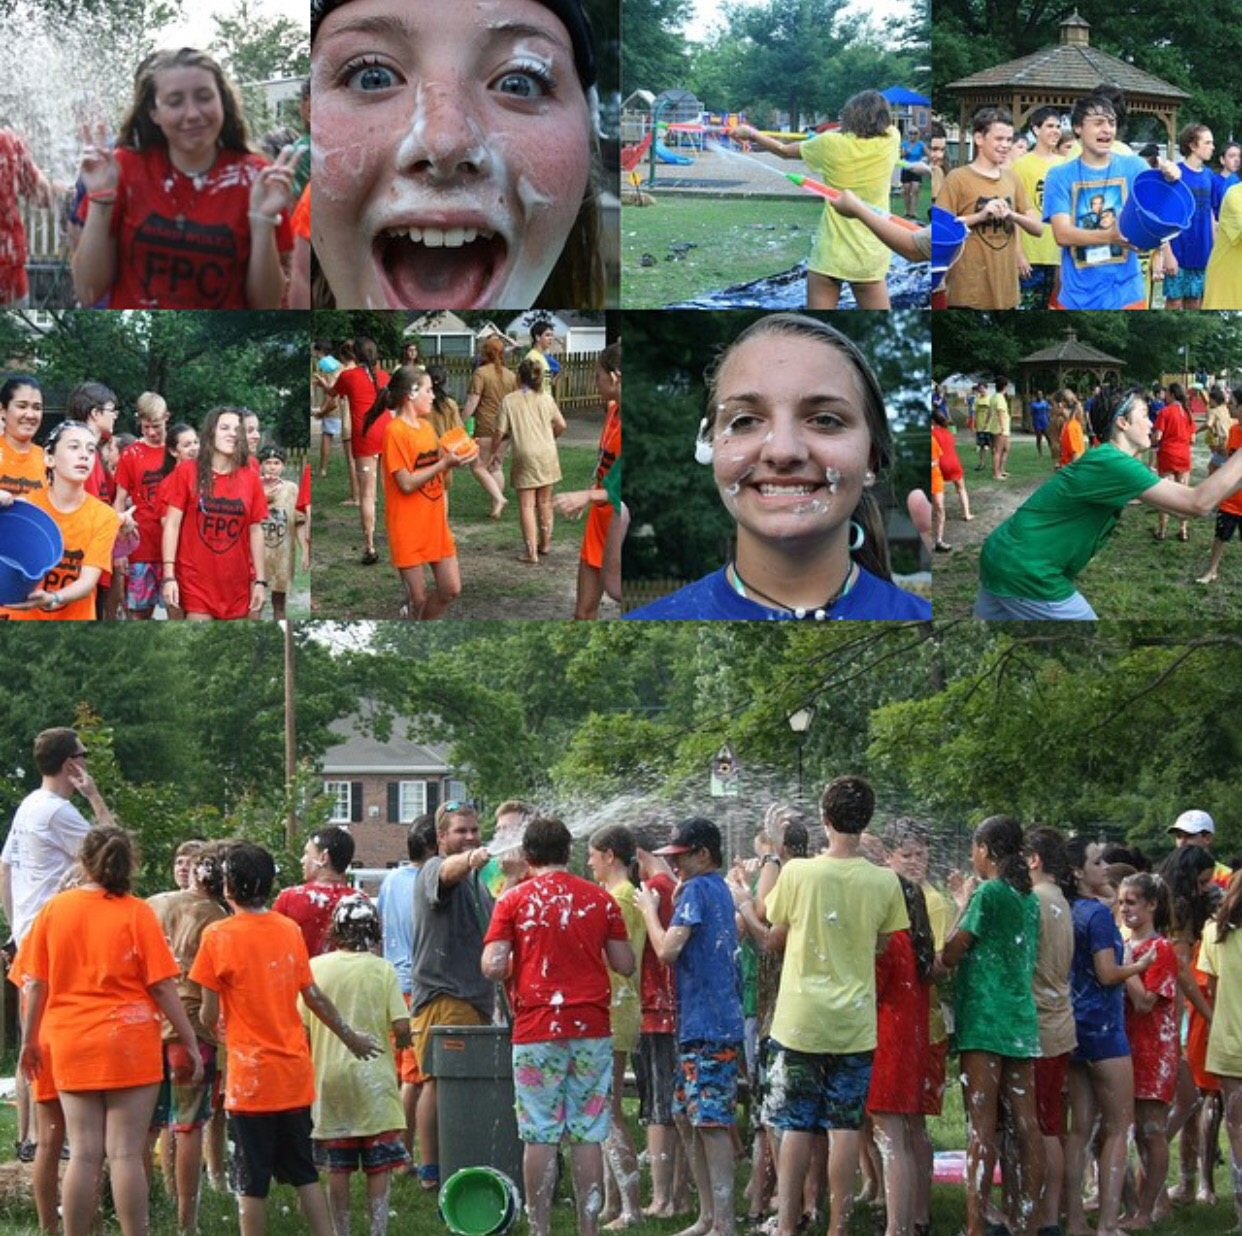 Ended our first full day of work cooling off with some water games!